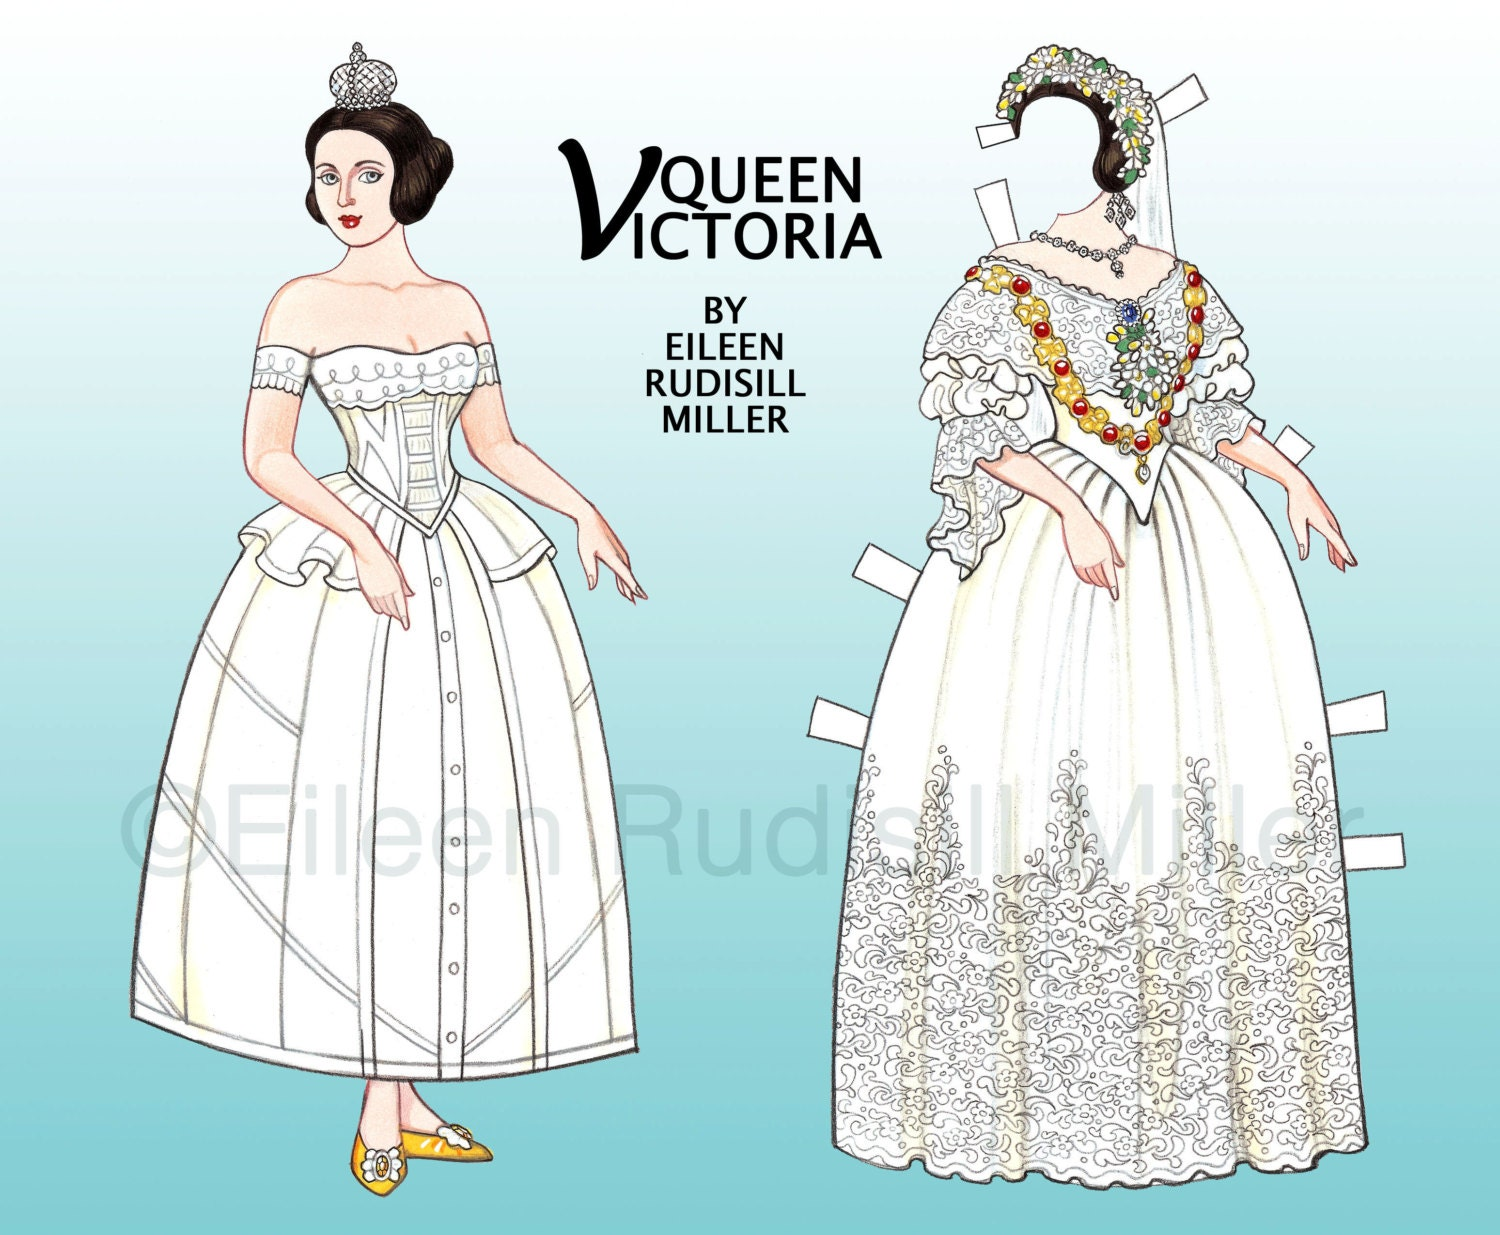 queen victoria thesis Original thesis revised thesis queen victoria set the tone of the british empire, and she allowed powerful prime queen victoria - essay - m queen victoria queen victoria was born in 1819 and died in 1901 she was queen of the united kingdom of great britain and ireland (1837-1901) and empress of india.